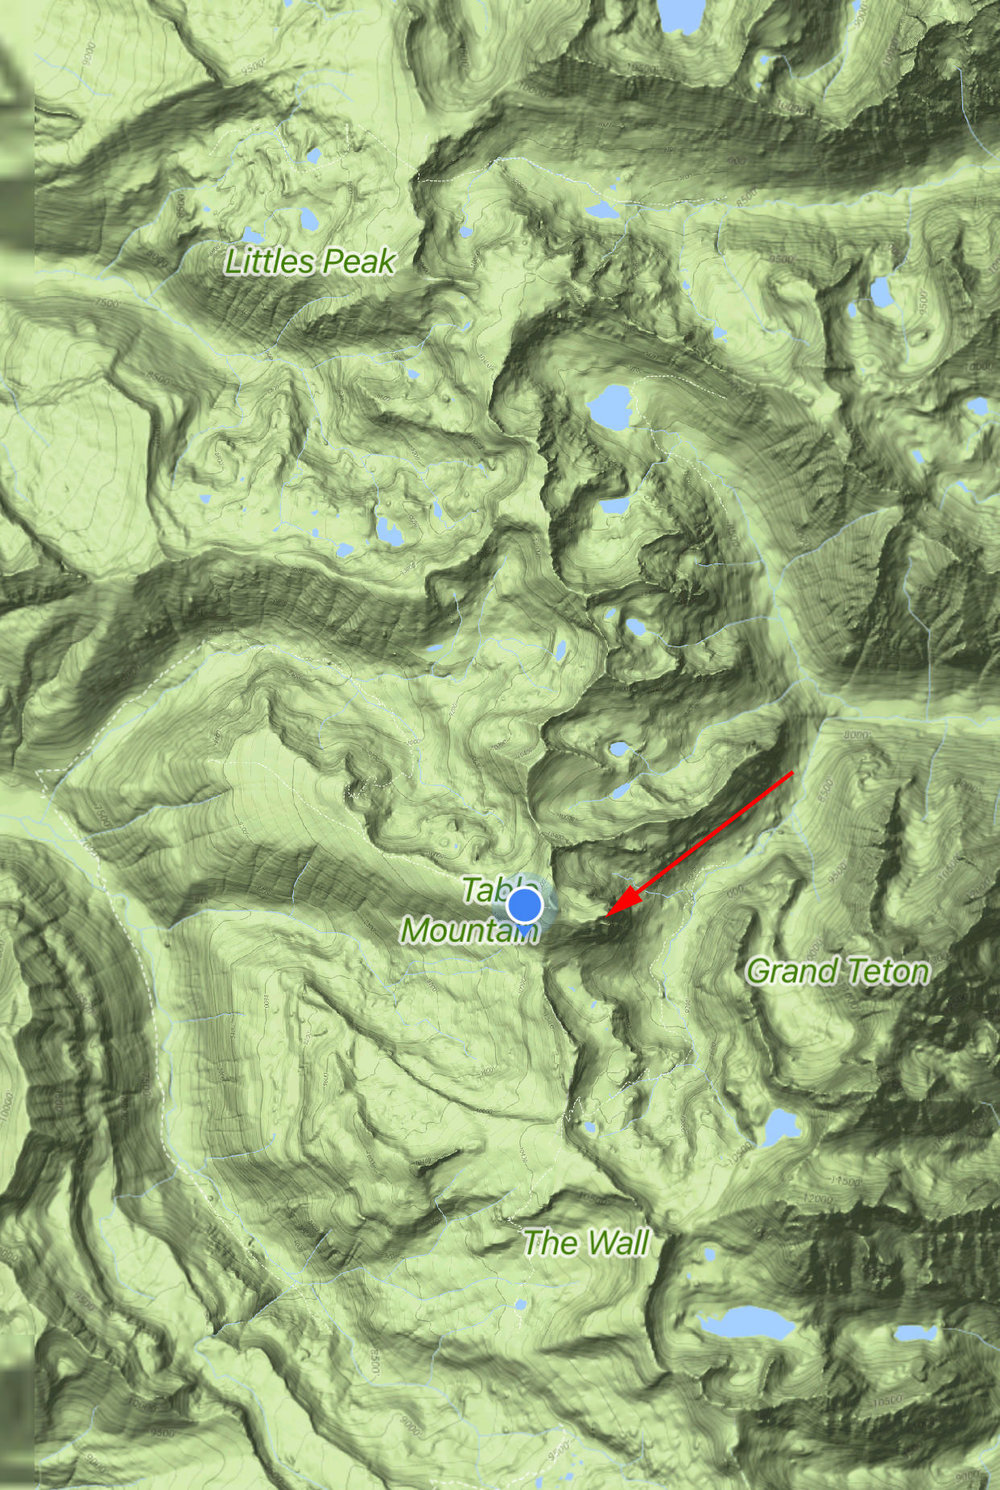 Blue dot is the peak of Table Mountain. Arrow is the cliff